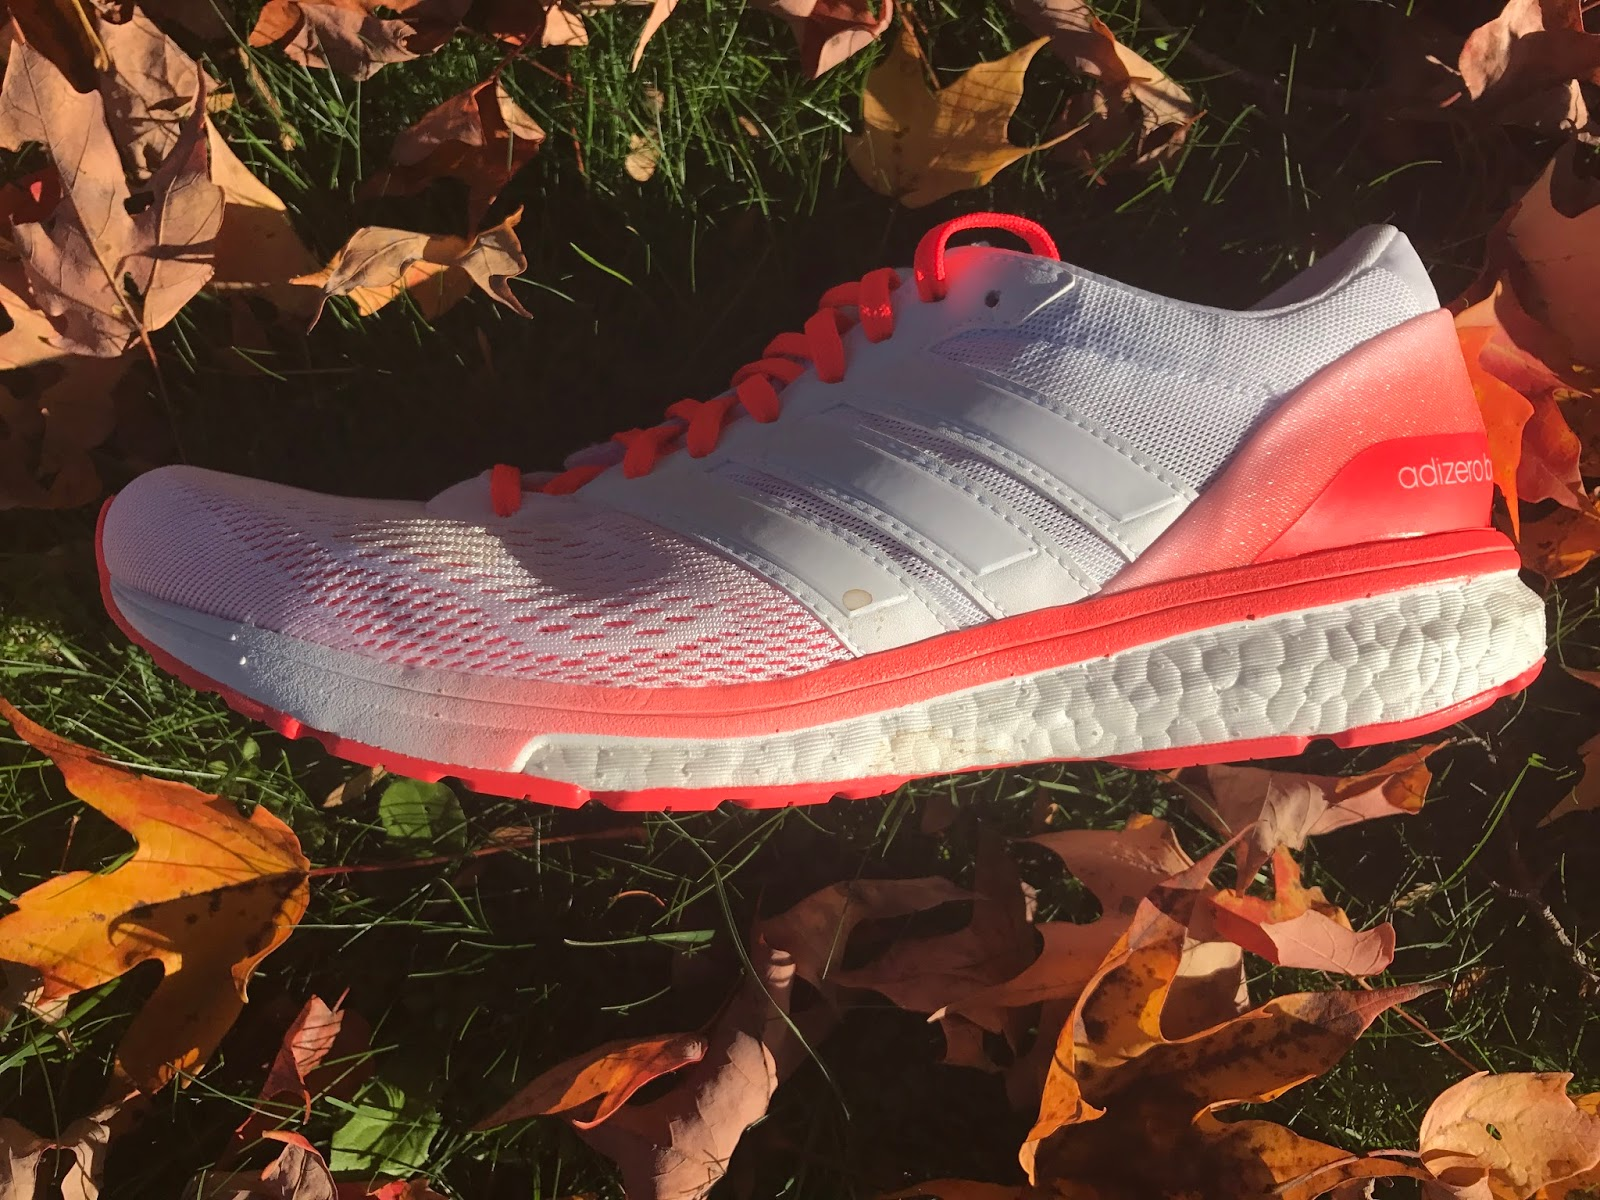 promo code 24d34 aaaf1 adidas adizero Boston 6 Review Truer to its Name. Versatile,Cushioned,  Comfortable. Smooth as Silk.